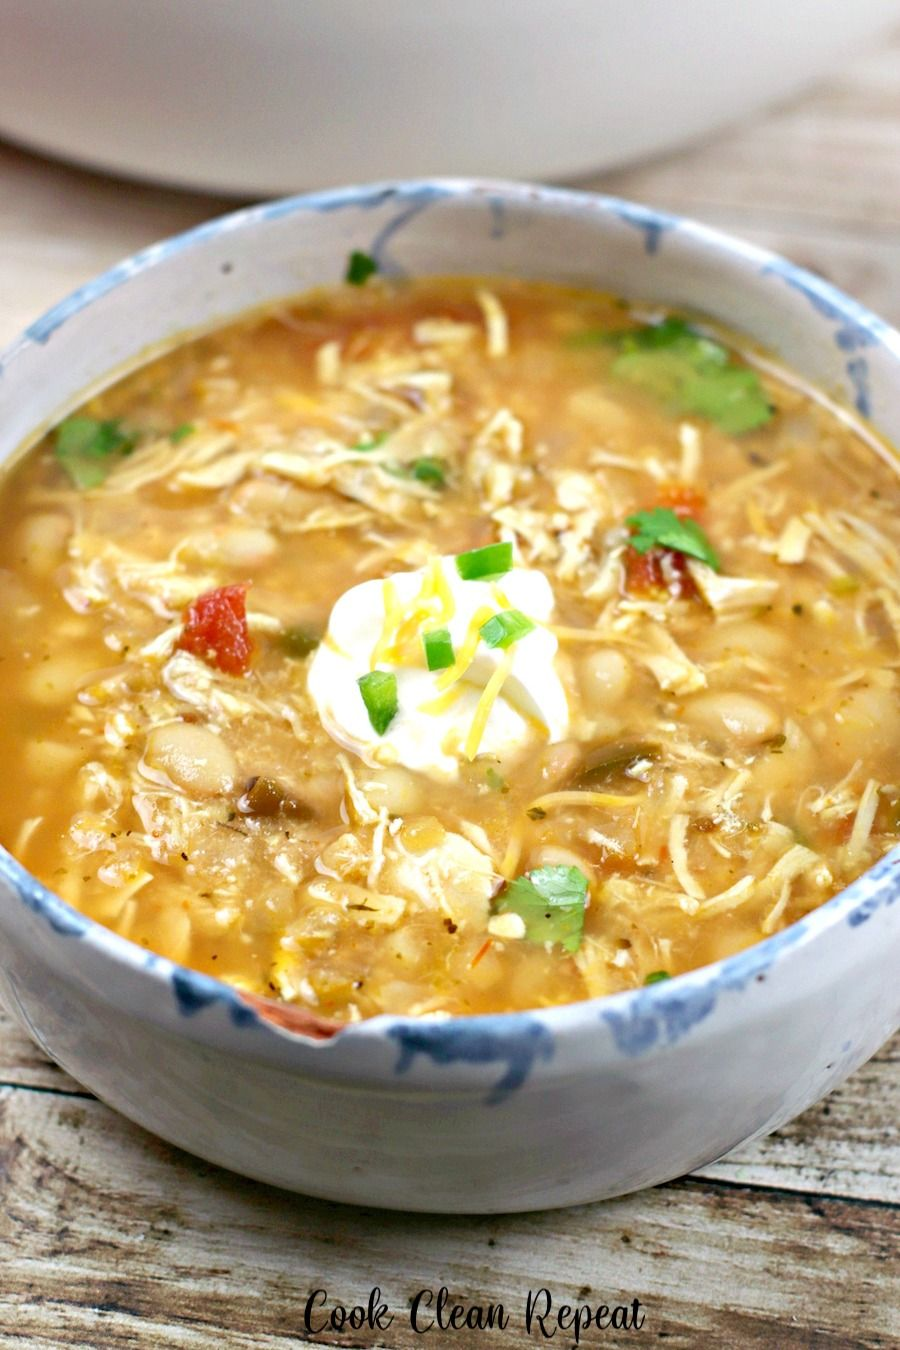 Today we're making a copycat Ruby Tuesday recipe for white chicken chili. This Ruby Tuesday white chicken chili is easy to make, delicious, and can be topped with all of your favorites! #rubytuesdays